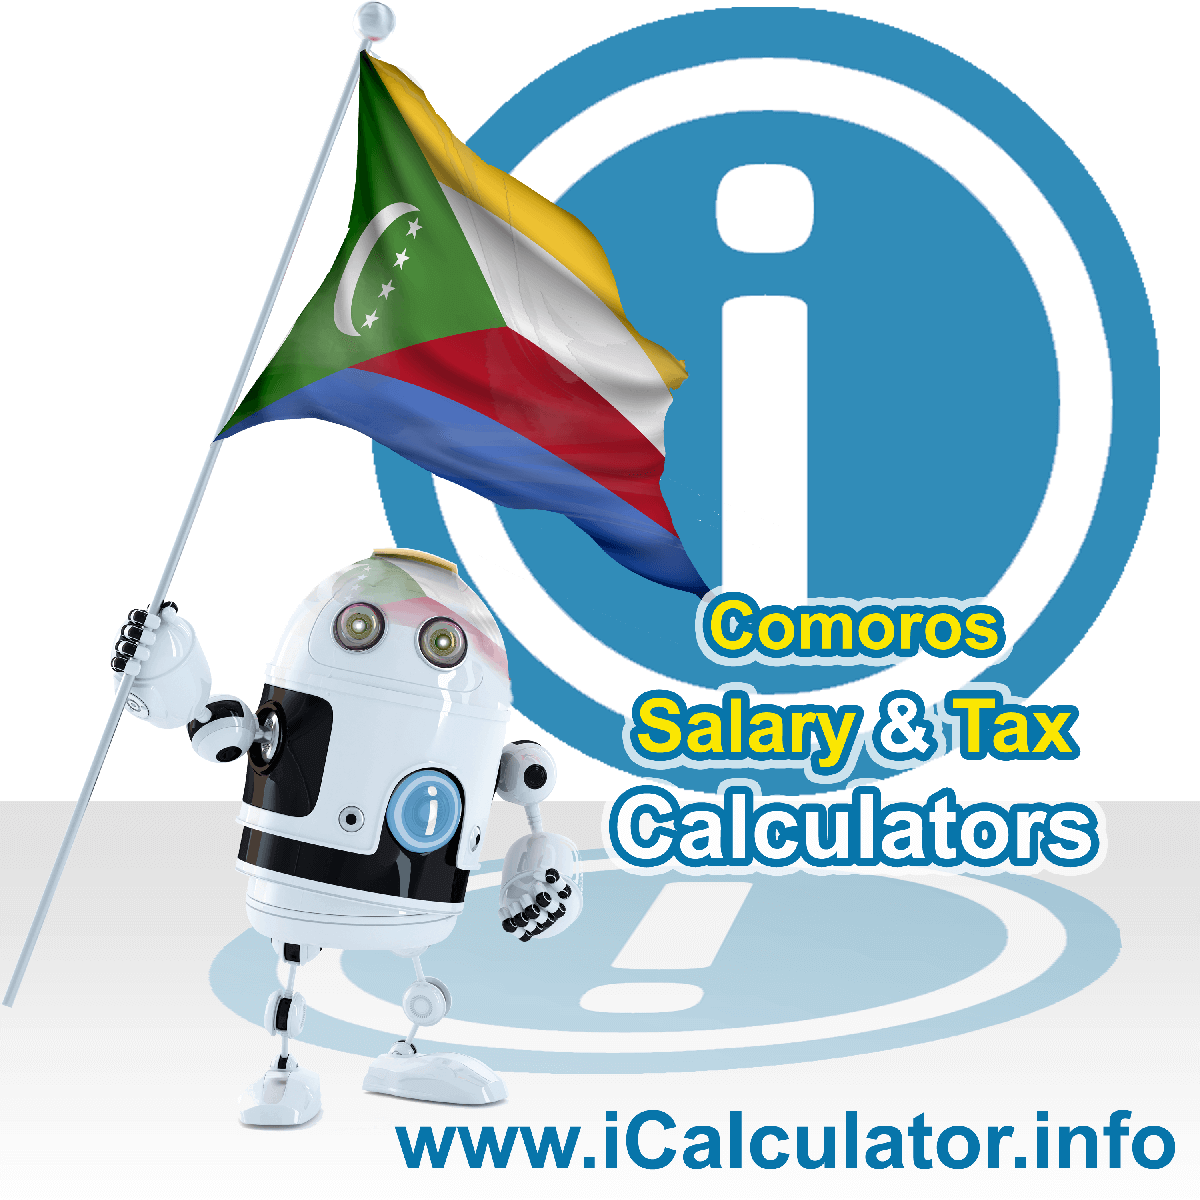 Comoros Wage Calculator. This image shows the Comoros flag and information relating to the tax formula for the Comoros Tax Calculator